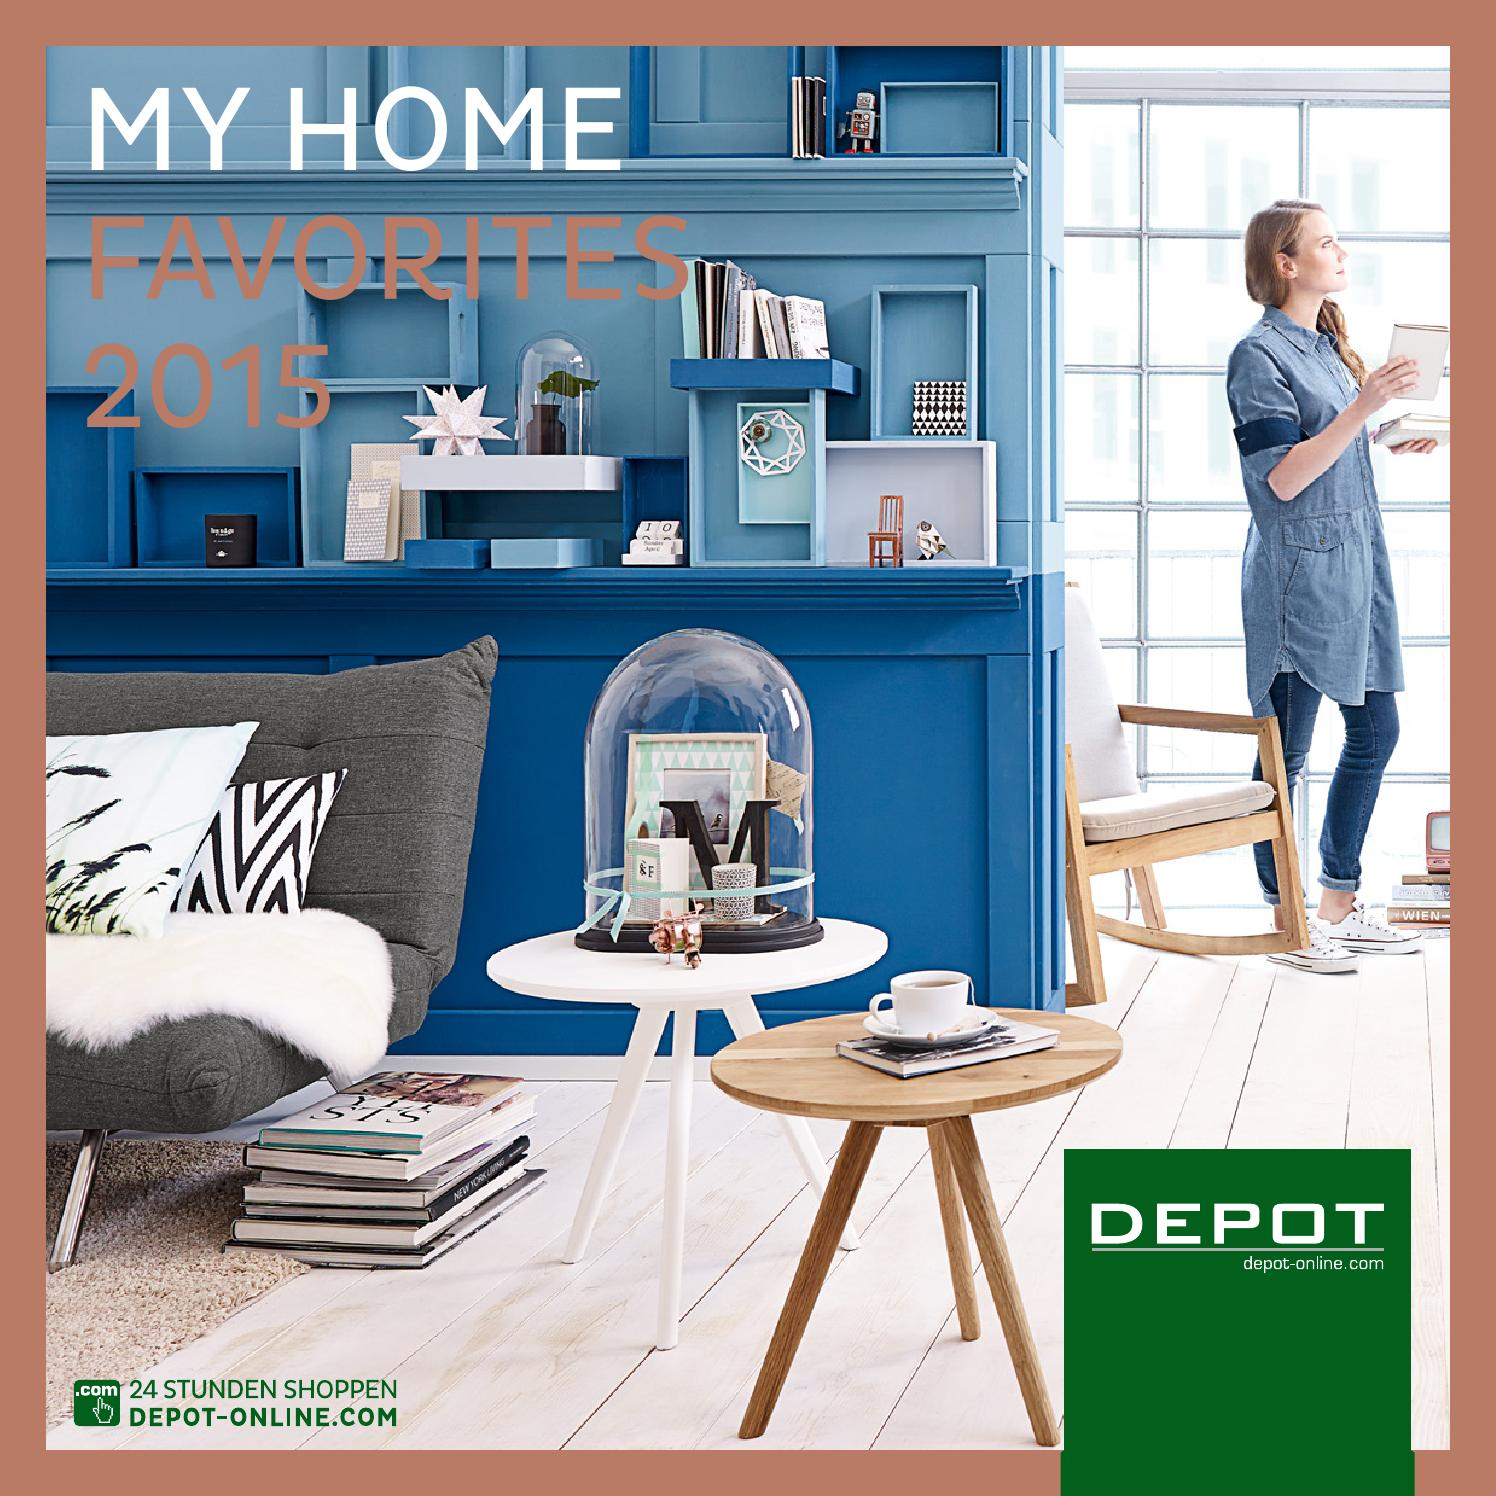 Depot Angebote My Home Favorites 2015 By